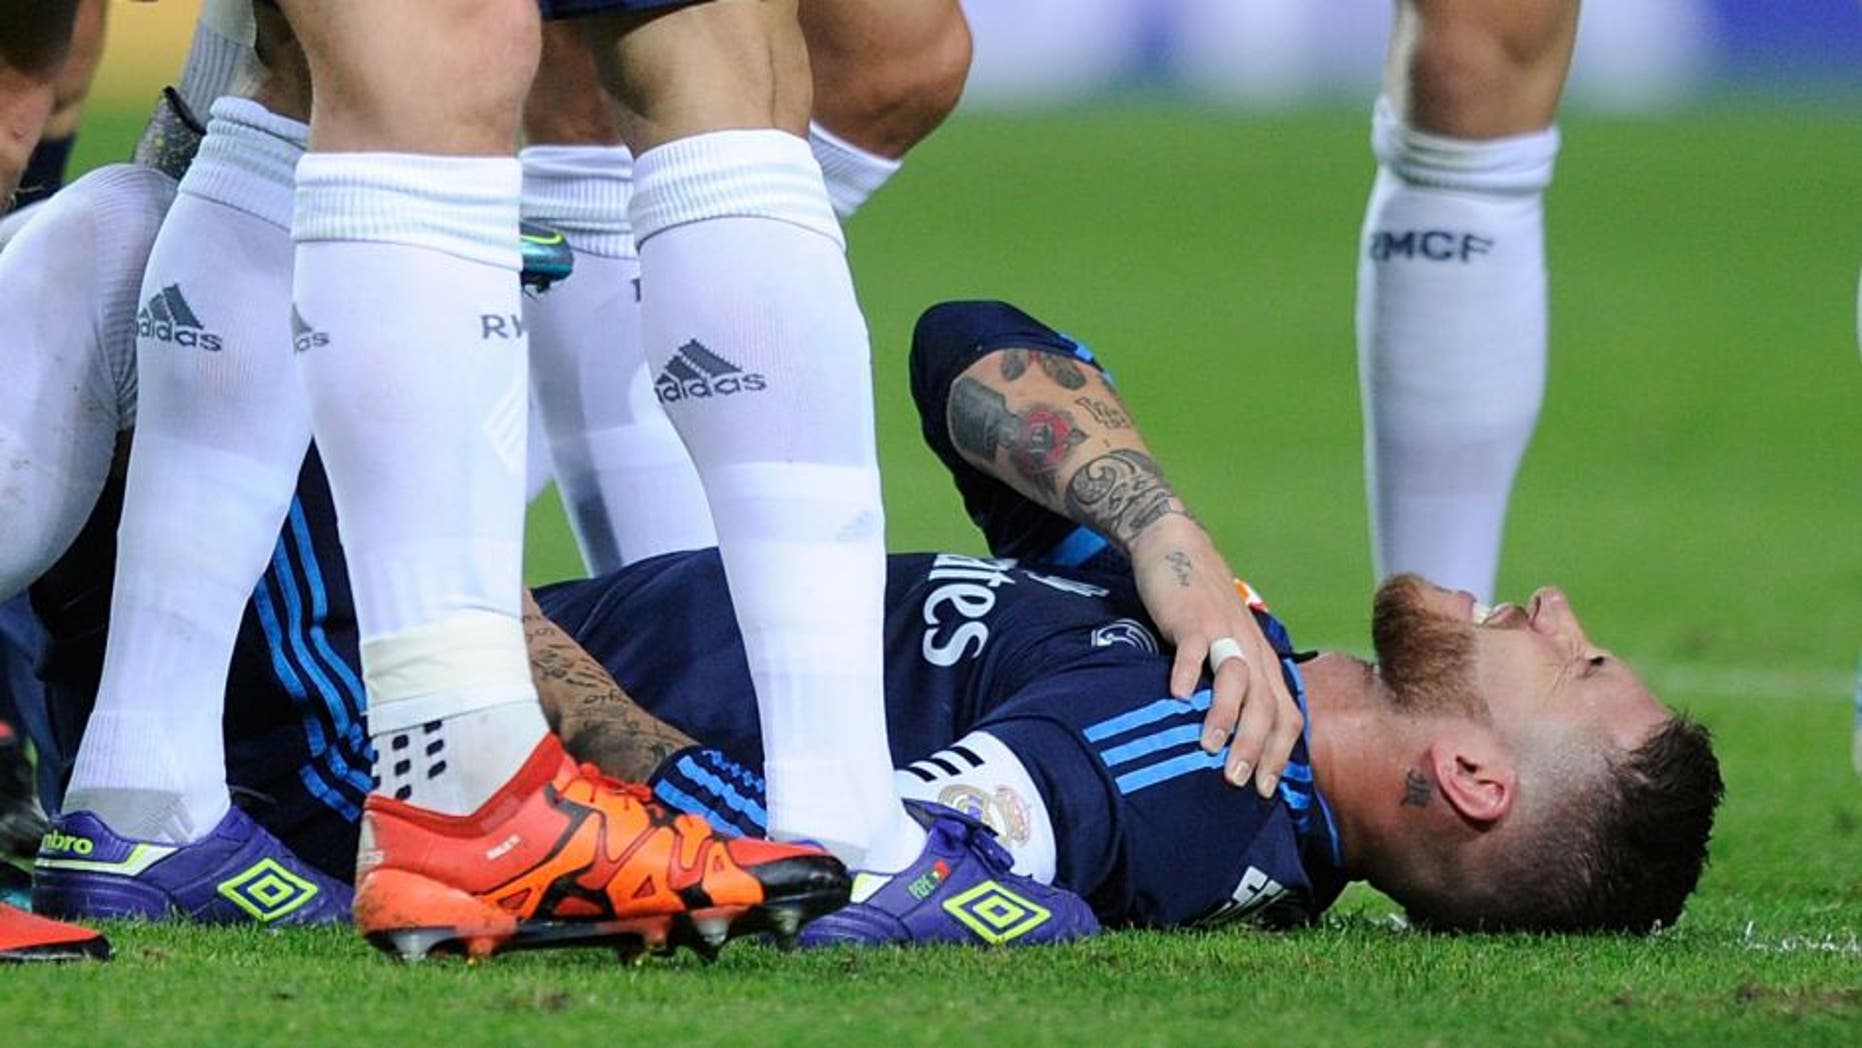 SEVILLE, SPAIN - NOVEMBER 08: Sergio Ramos of Real Madrid holds his shoulder after getting injured while scoring his team's opening goal during the La Liga match between Sevilla FC and Real Madrid CF at Estadio Ramon Sanchez Pizjuan on November 8, 2015 in Seville, Spain. (Photo by Denis Doyle/Getty Images)